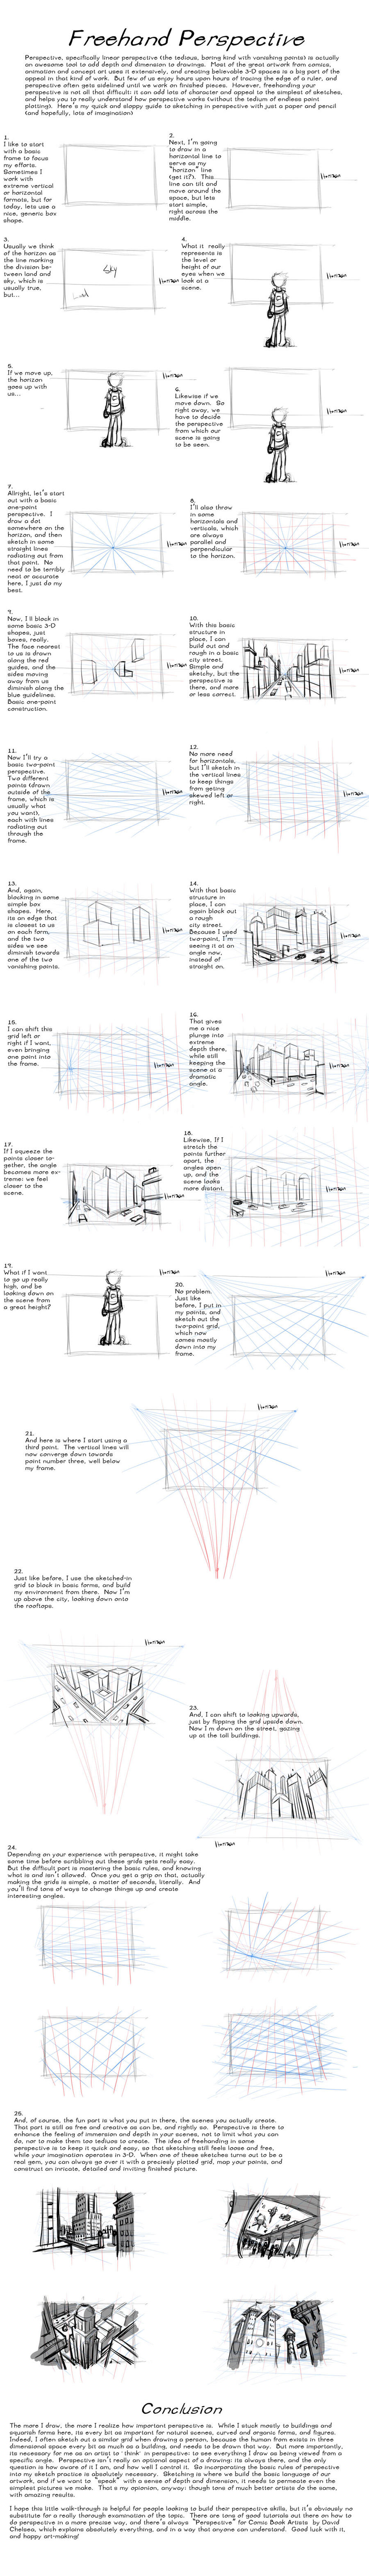 Freehand Perspective Drawing Tutorial by AdamMasterman